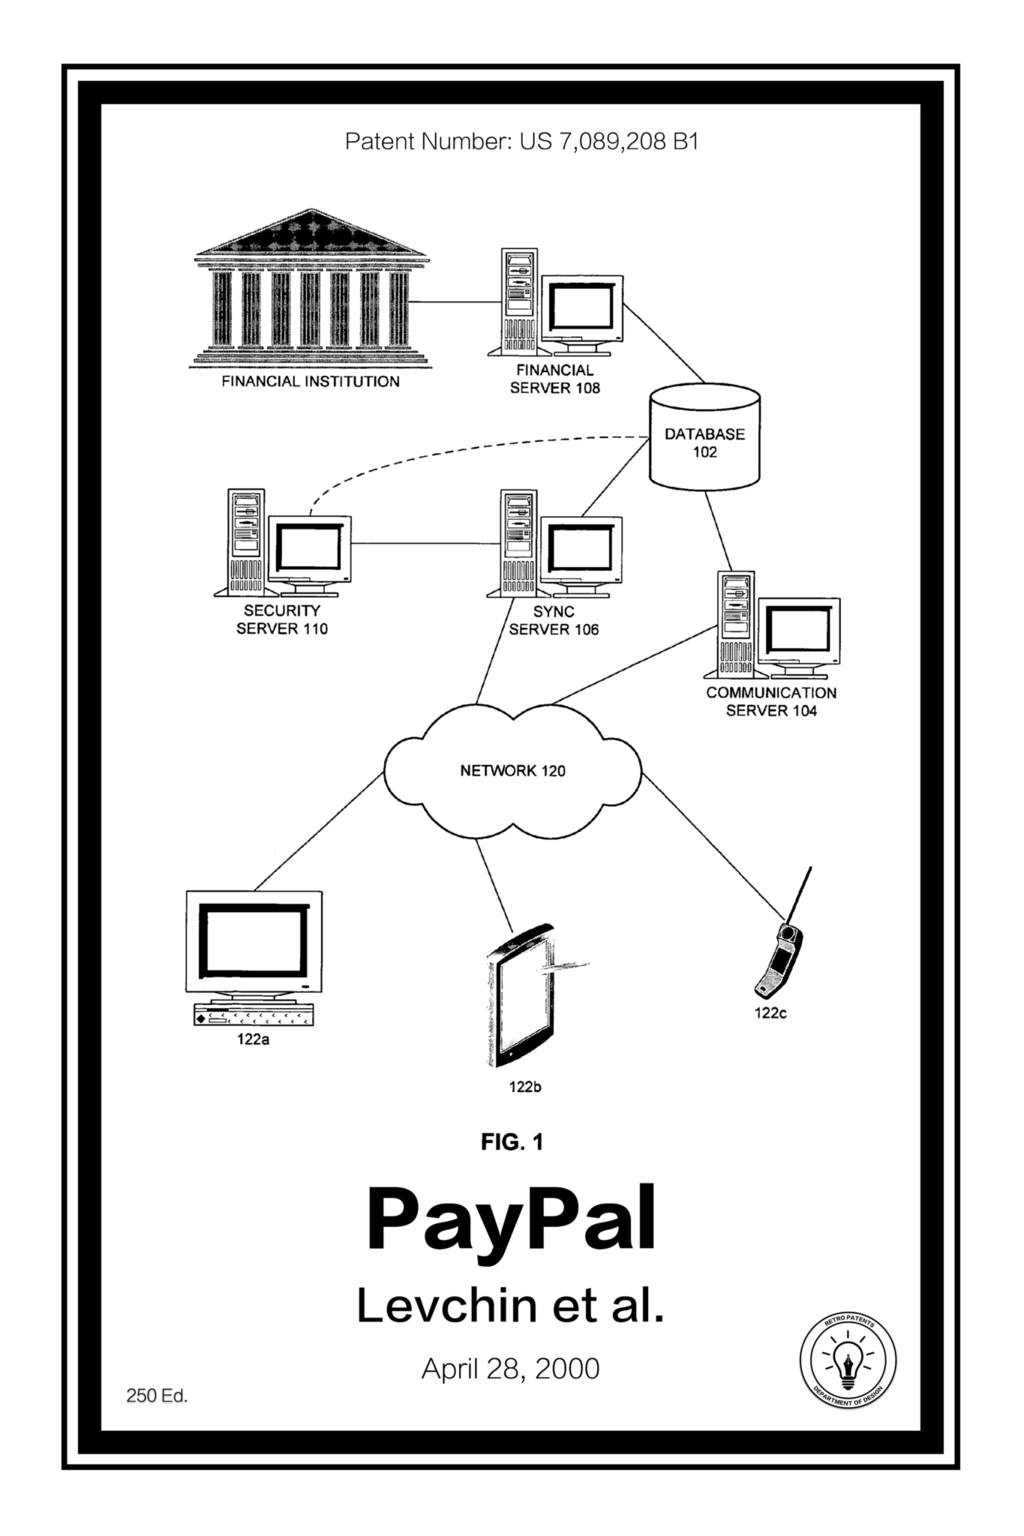 Retro Patents PayPal Patent Financial institutions